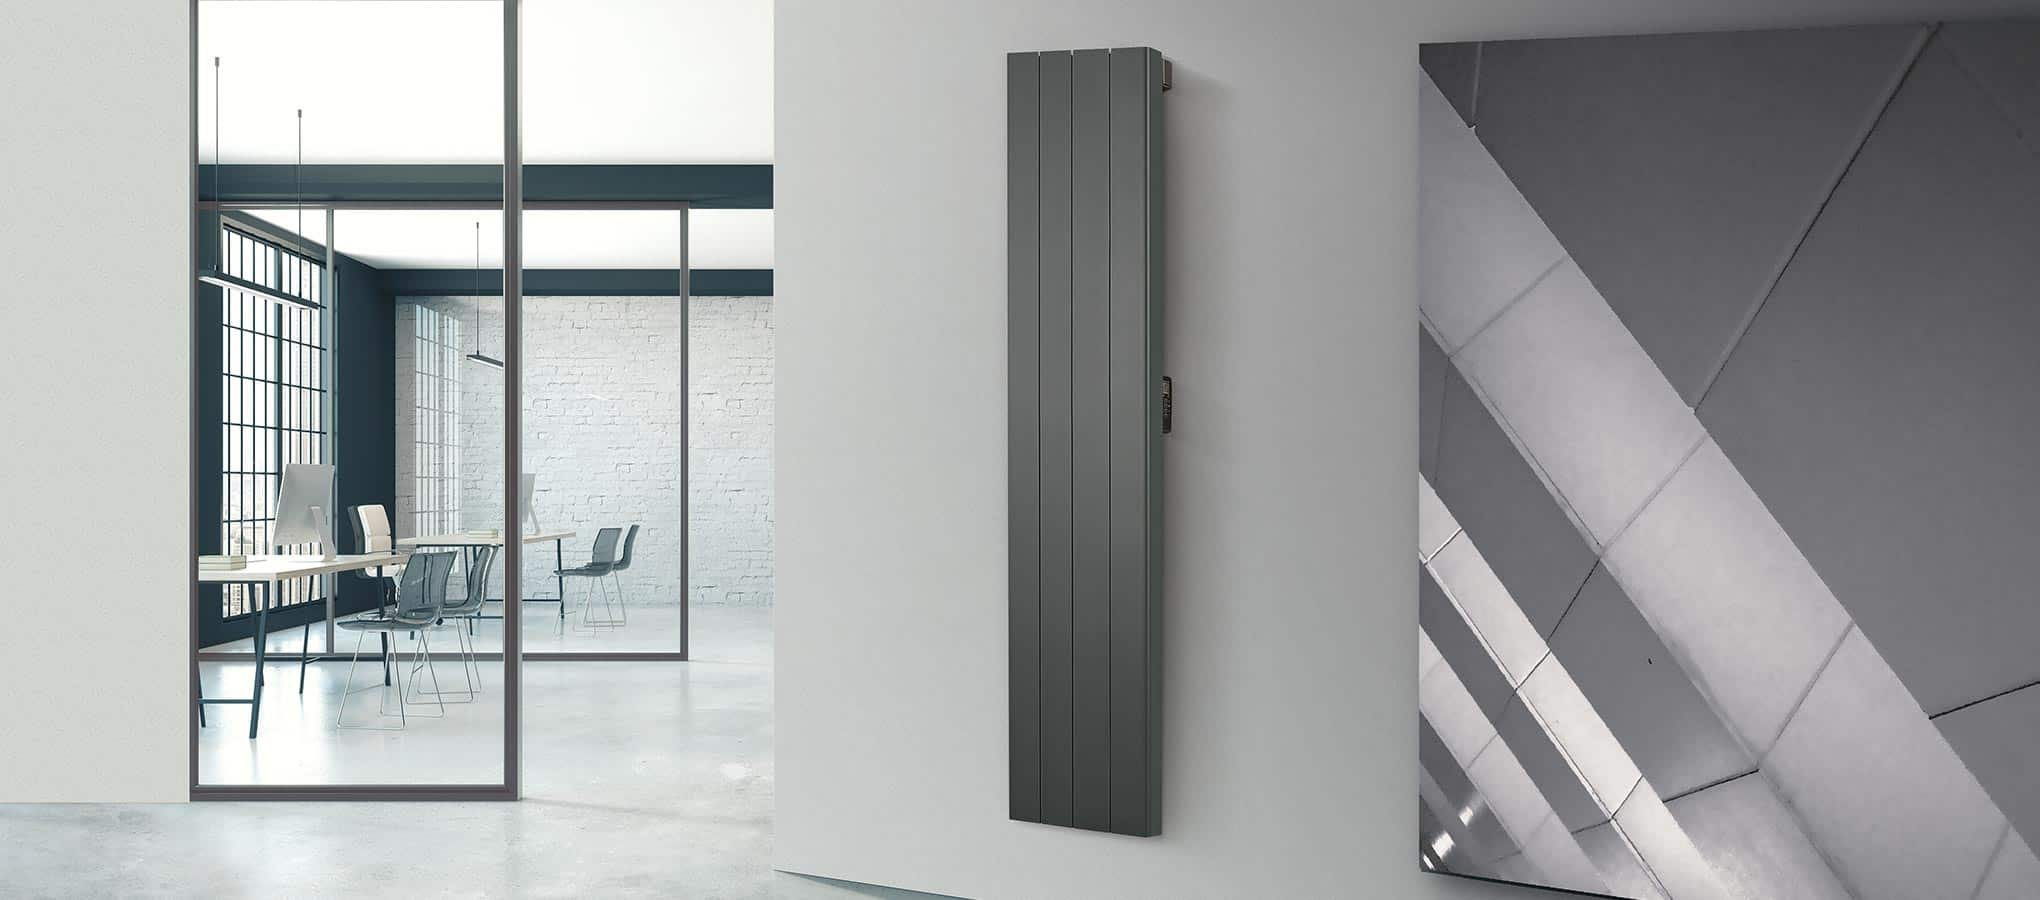 Rointe Palaos tall vertical slim line electric radiator in black wall mounted in office